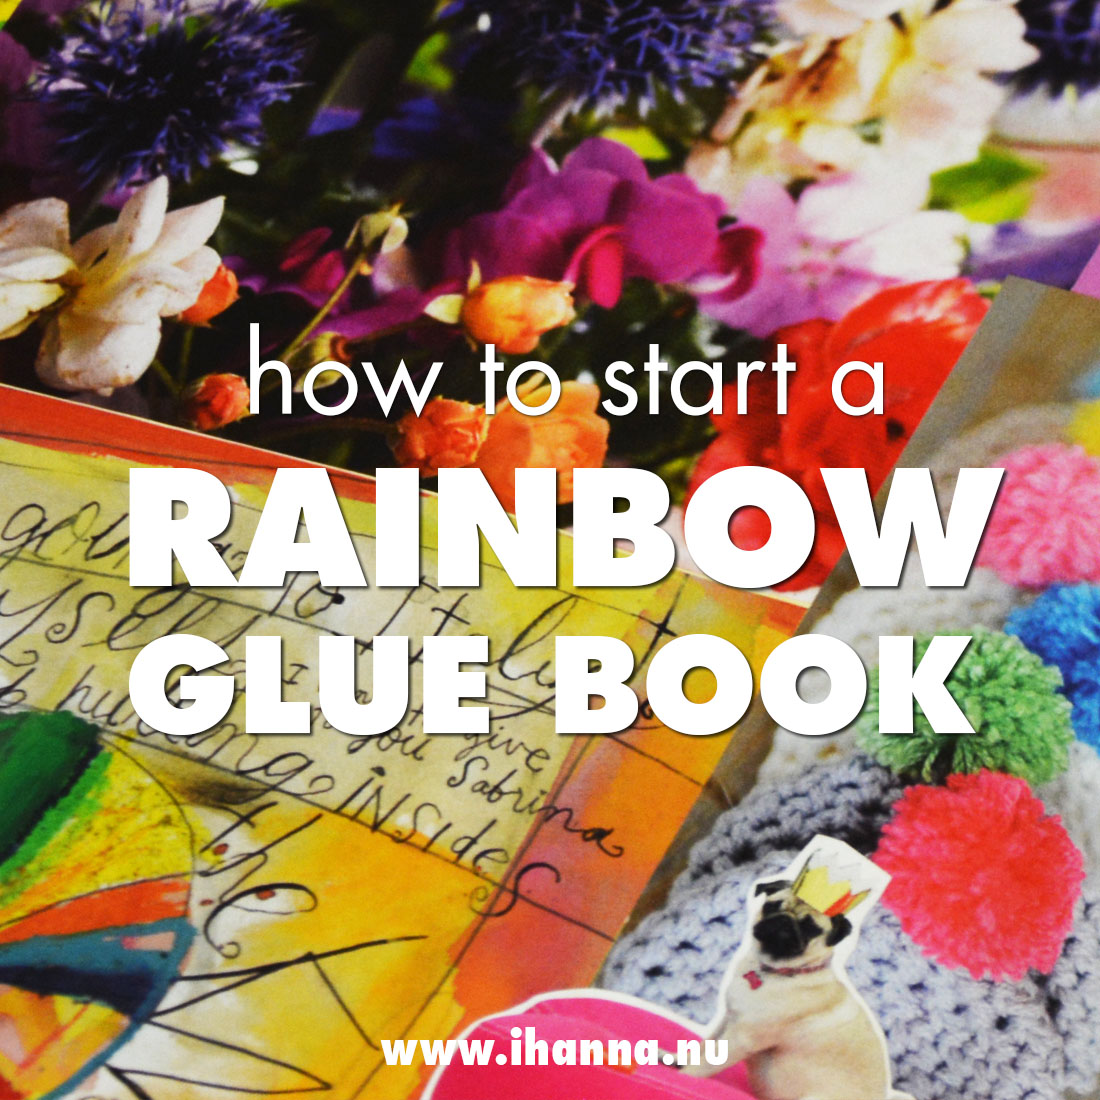 How to start a Rainbow Glue Book